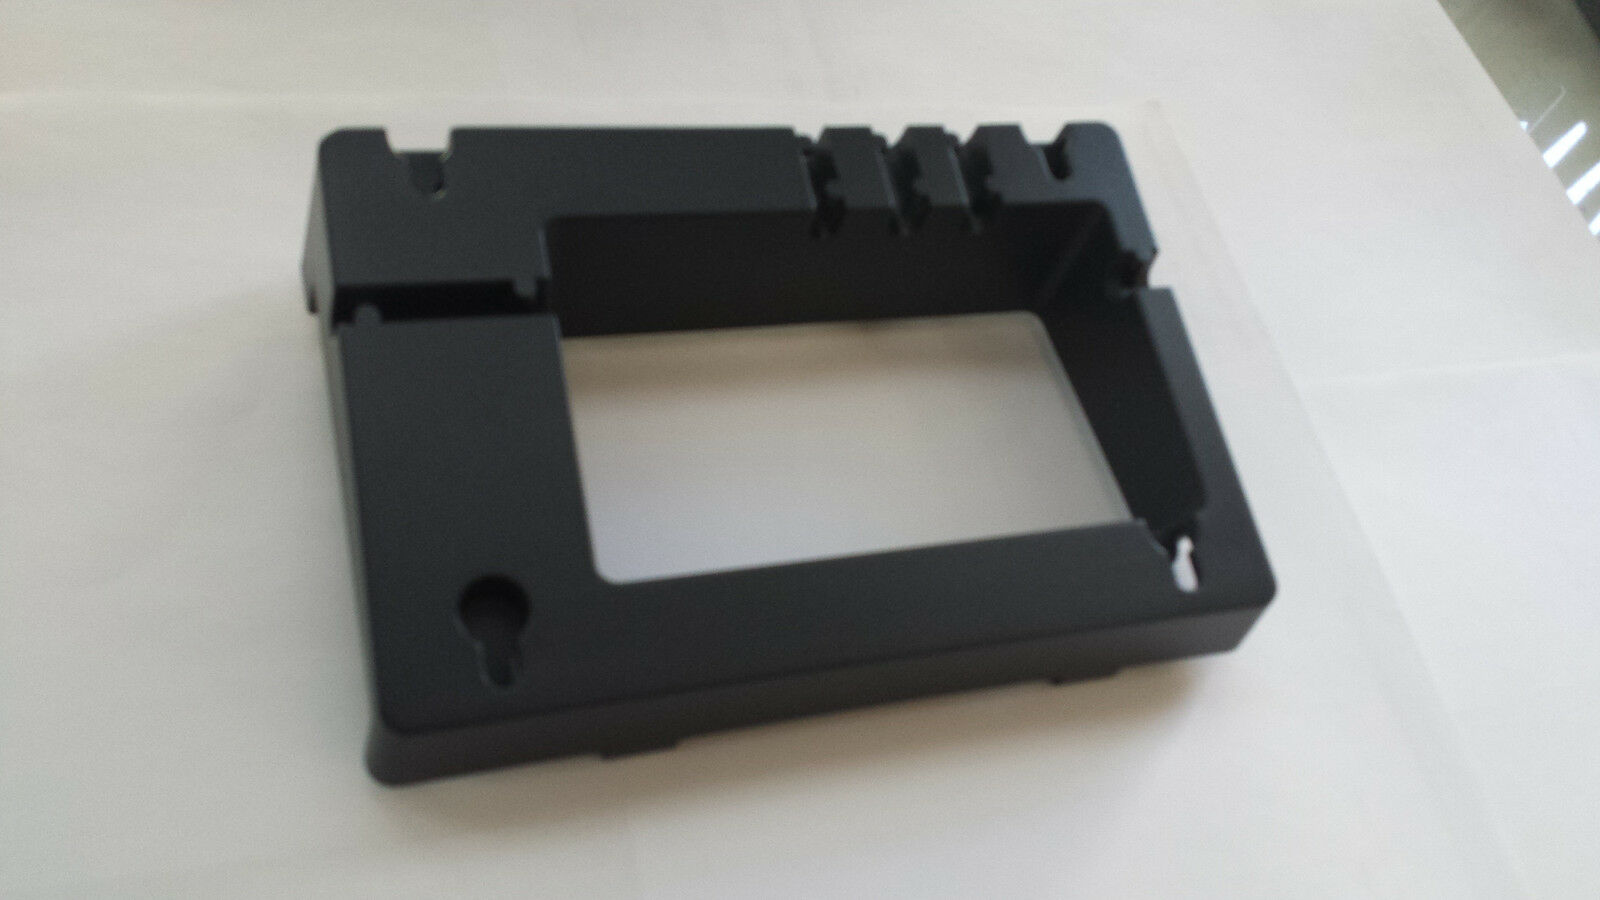 Yealink Base Stand Bracket for T48-DeskMount T48 T48G T48S SFB-T48S-SKYPE